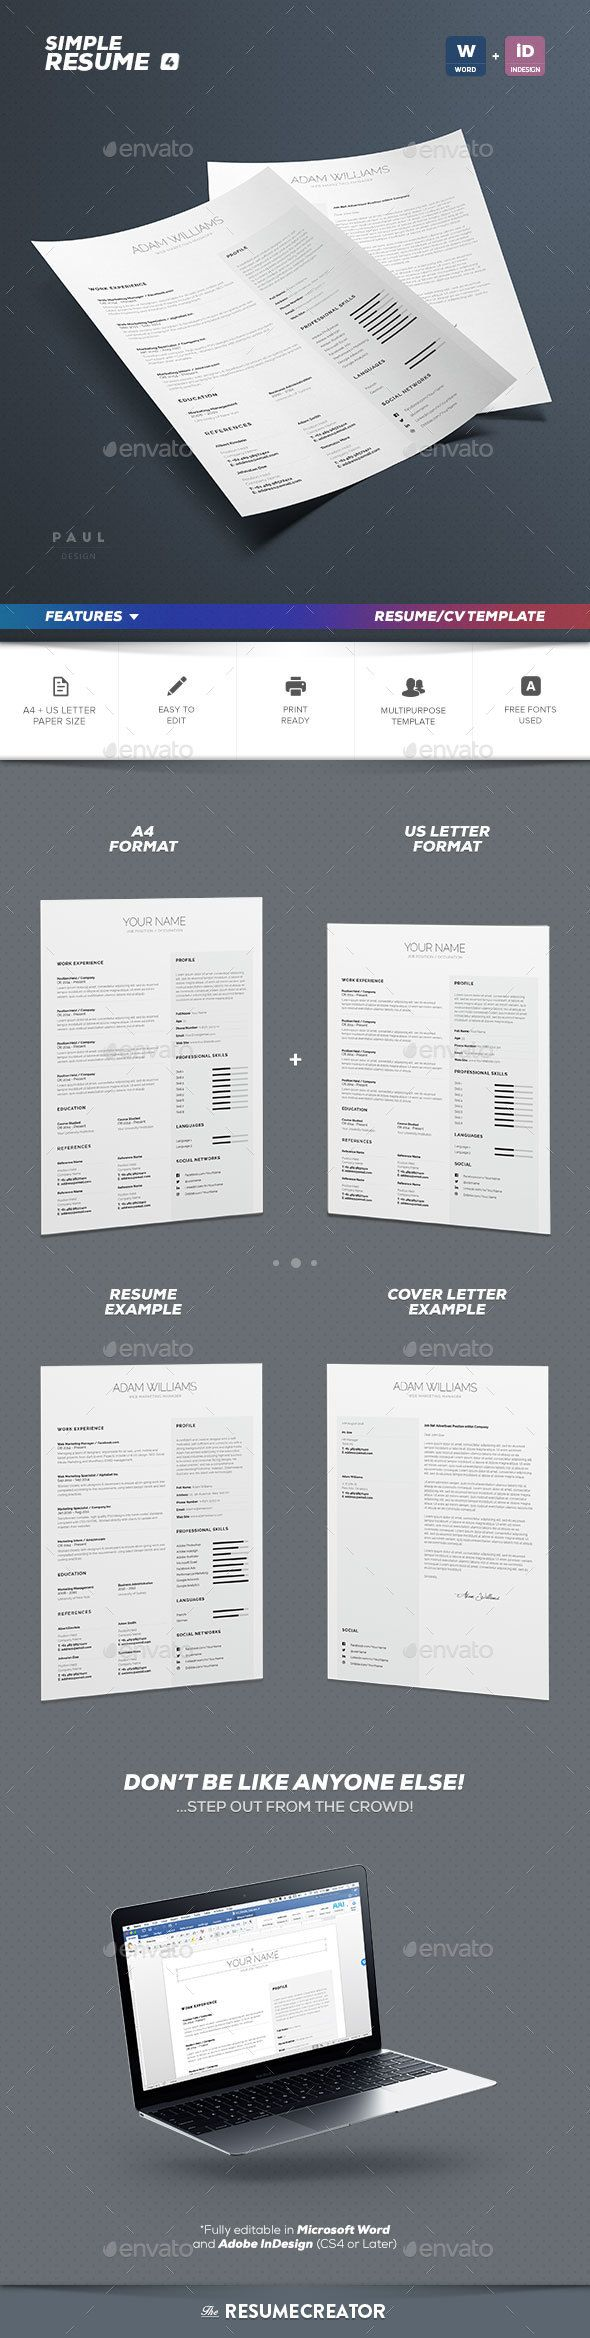 Simple ResumeCv Volume 4 by paolo6180 Professionally